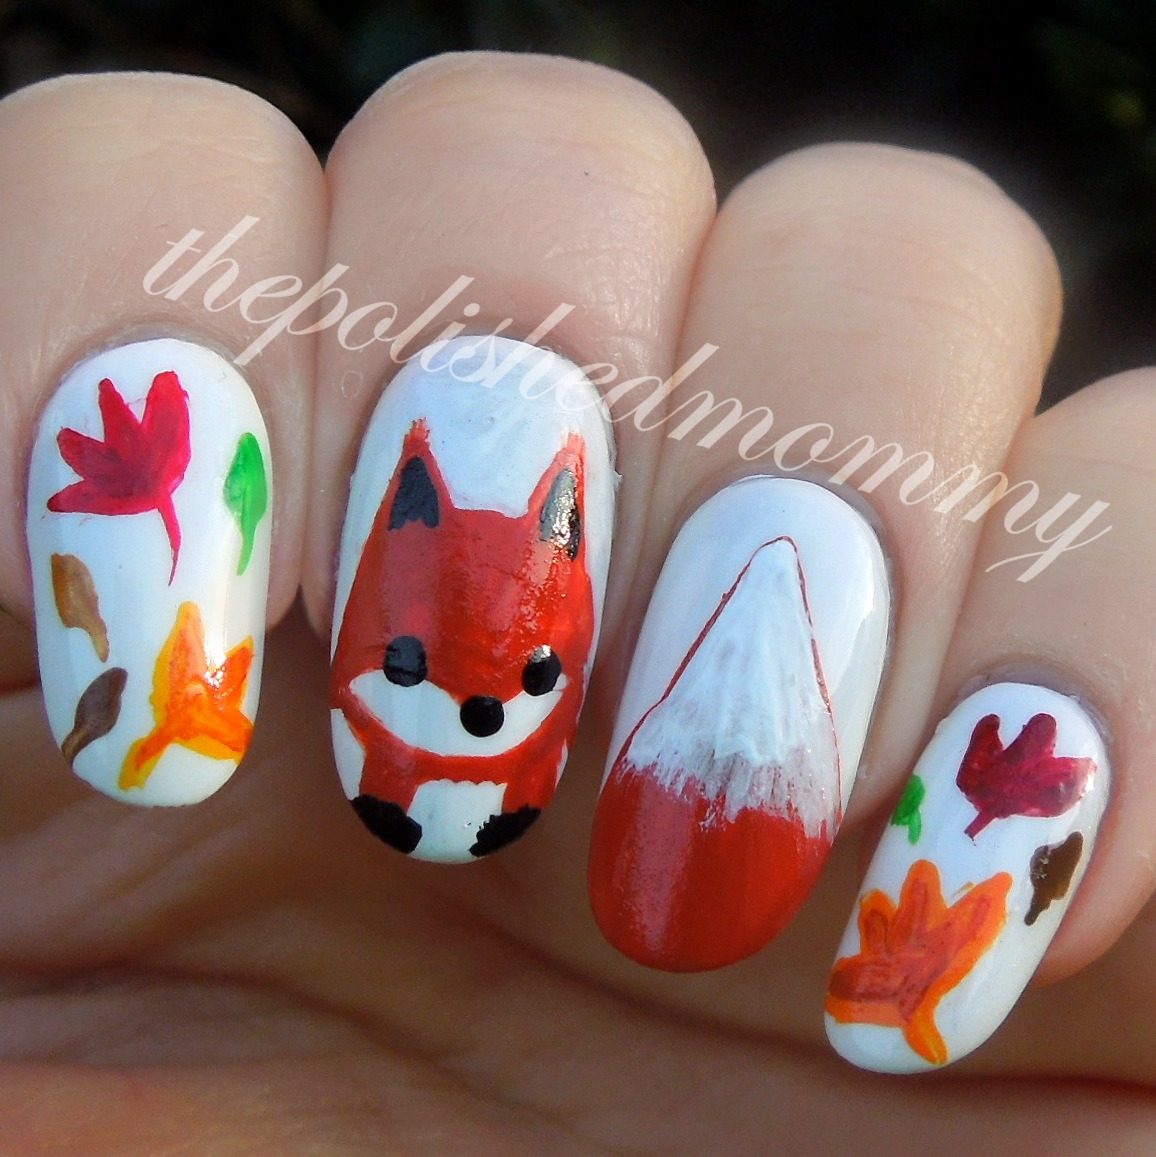 Fox Nail Designs: The Polished Mommy